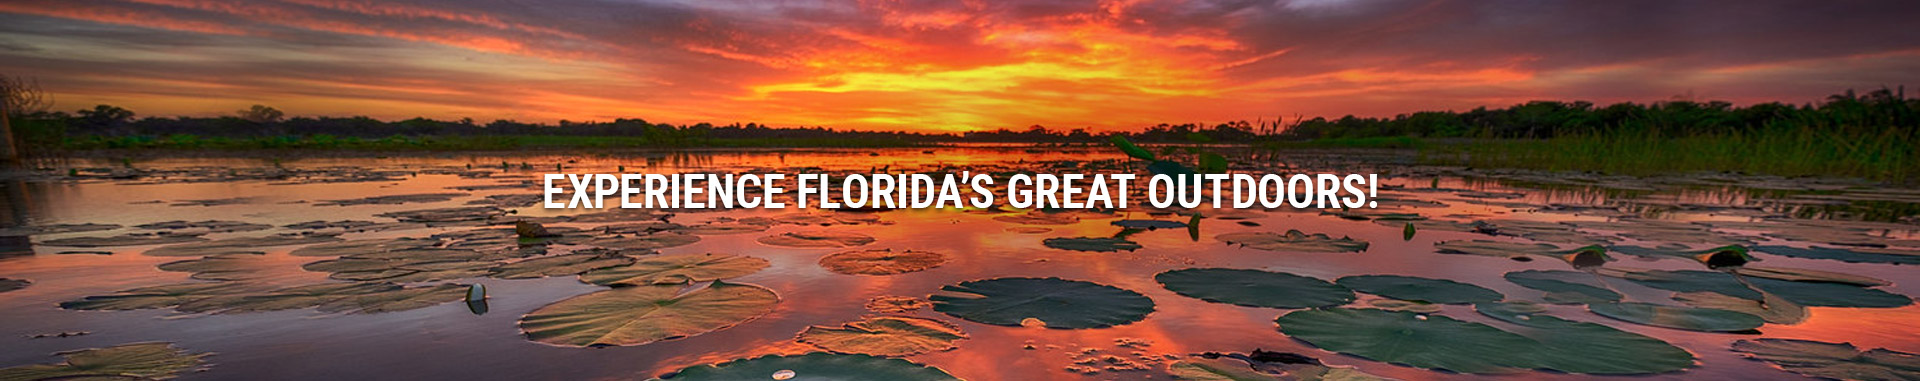 Experience Floridas Great Outdoors!